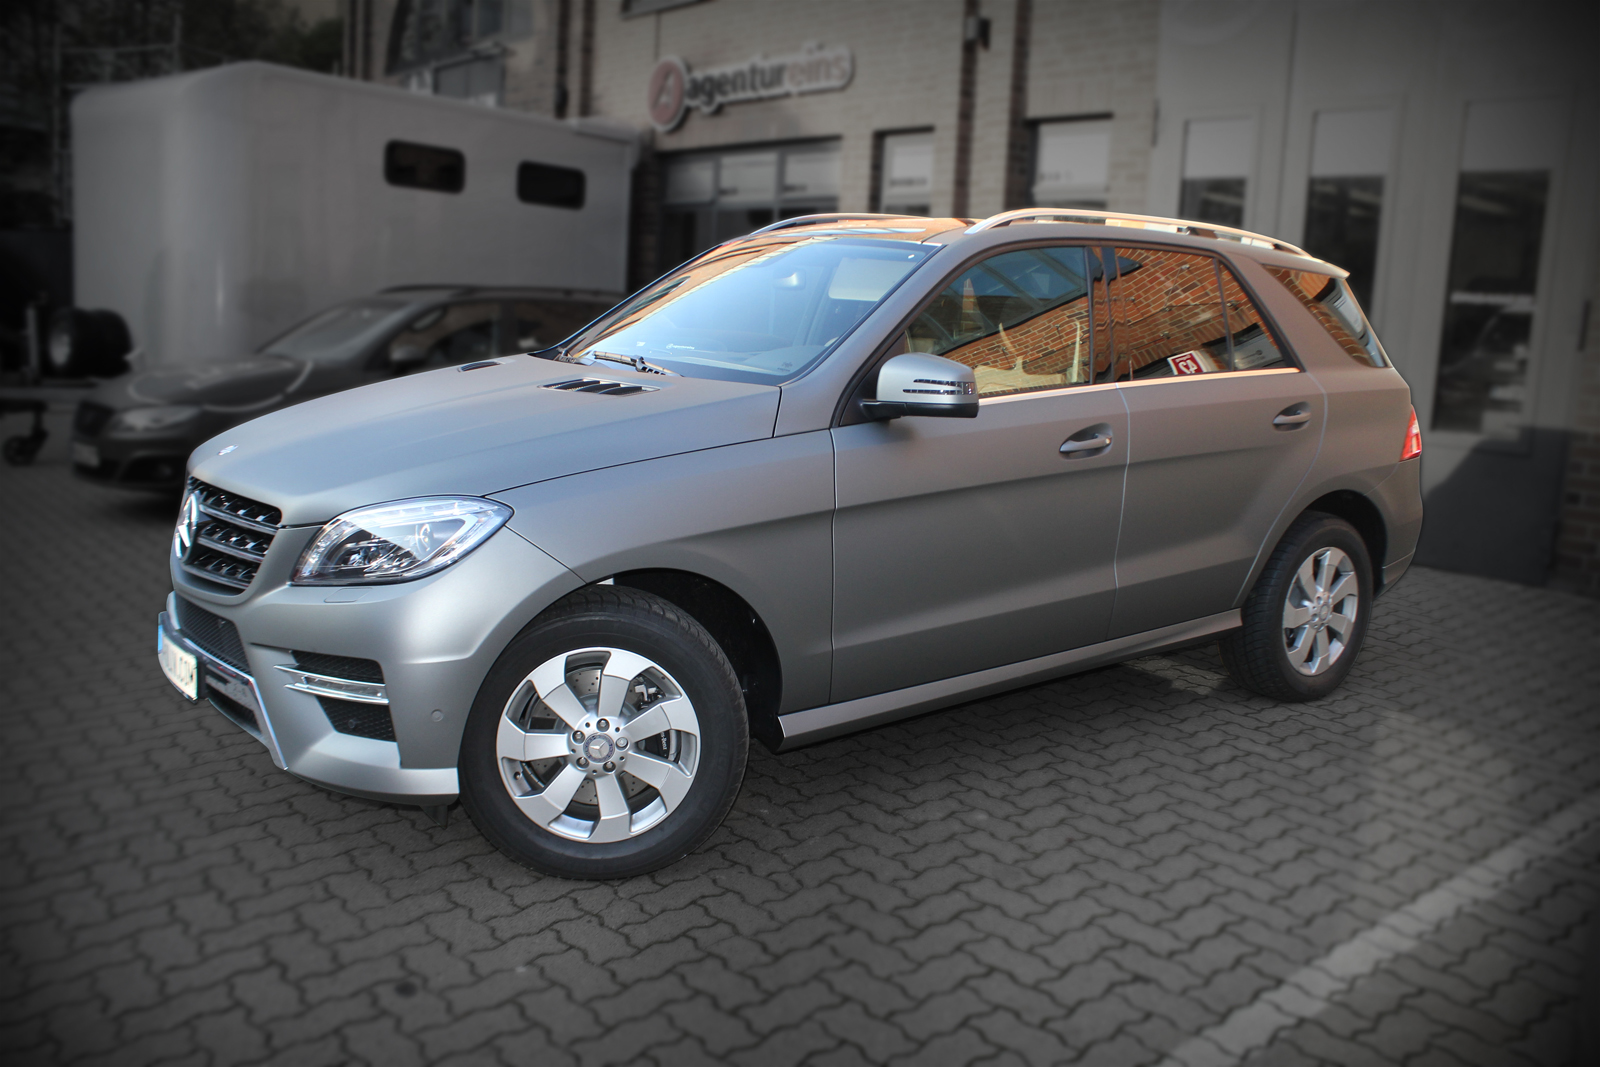 Auto Folierung Car Wrapping Mercedes ML Folierung Gunmetal Matt Metallic